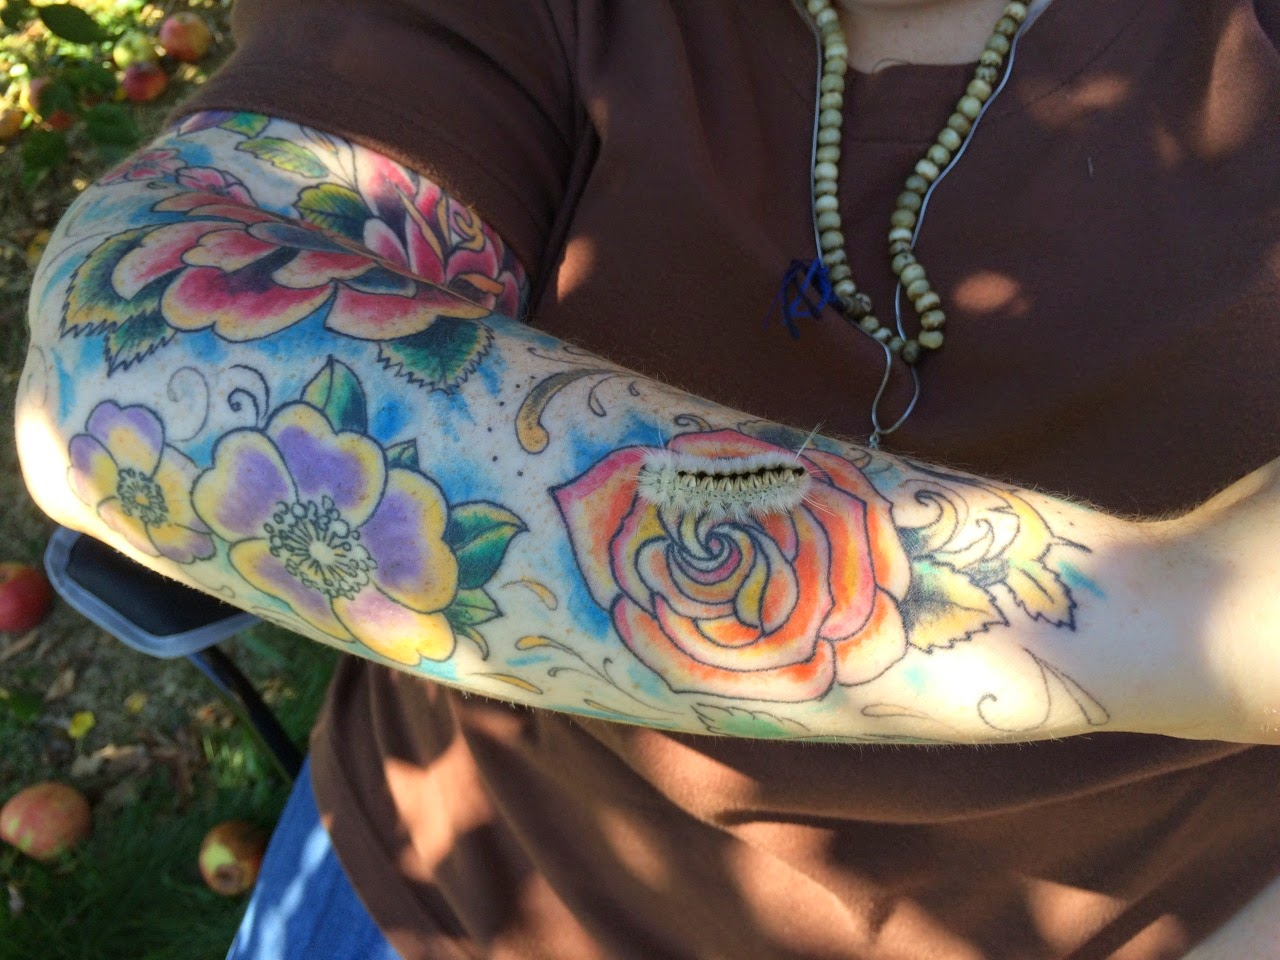 Photograph: An outdoor photo of a tattooed arm covered in different many different roses. On one of these roses there is fuzzy caterpillar.